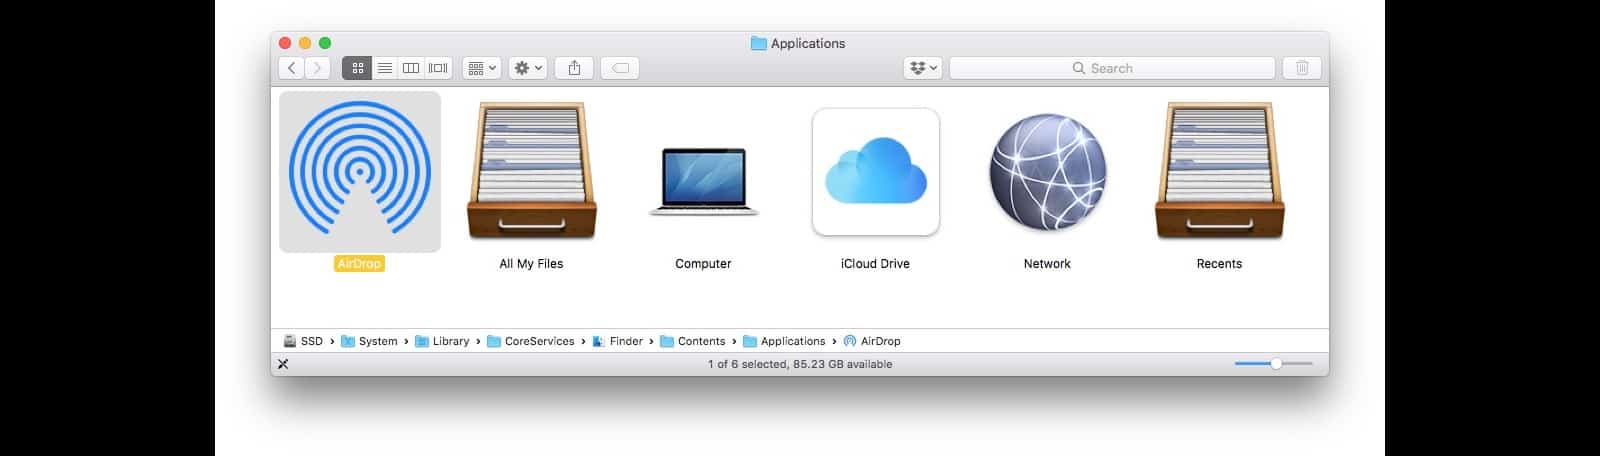 'Patent Troll' Sues Apple Over AirDrop Technology